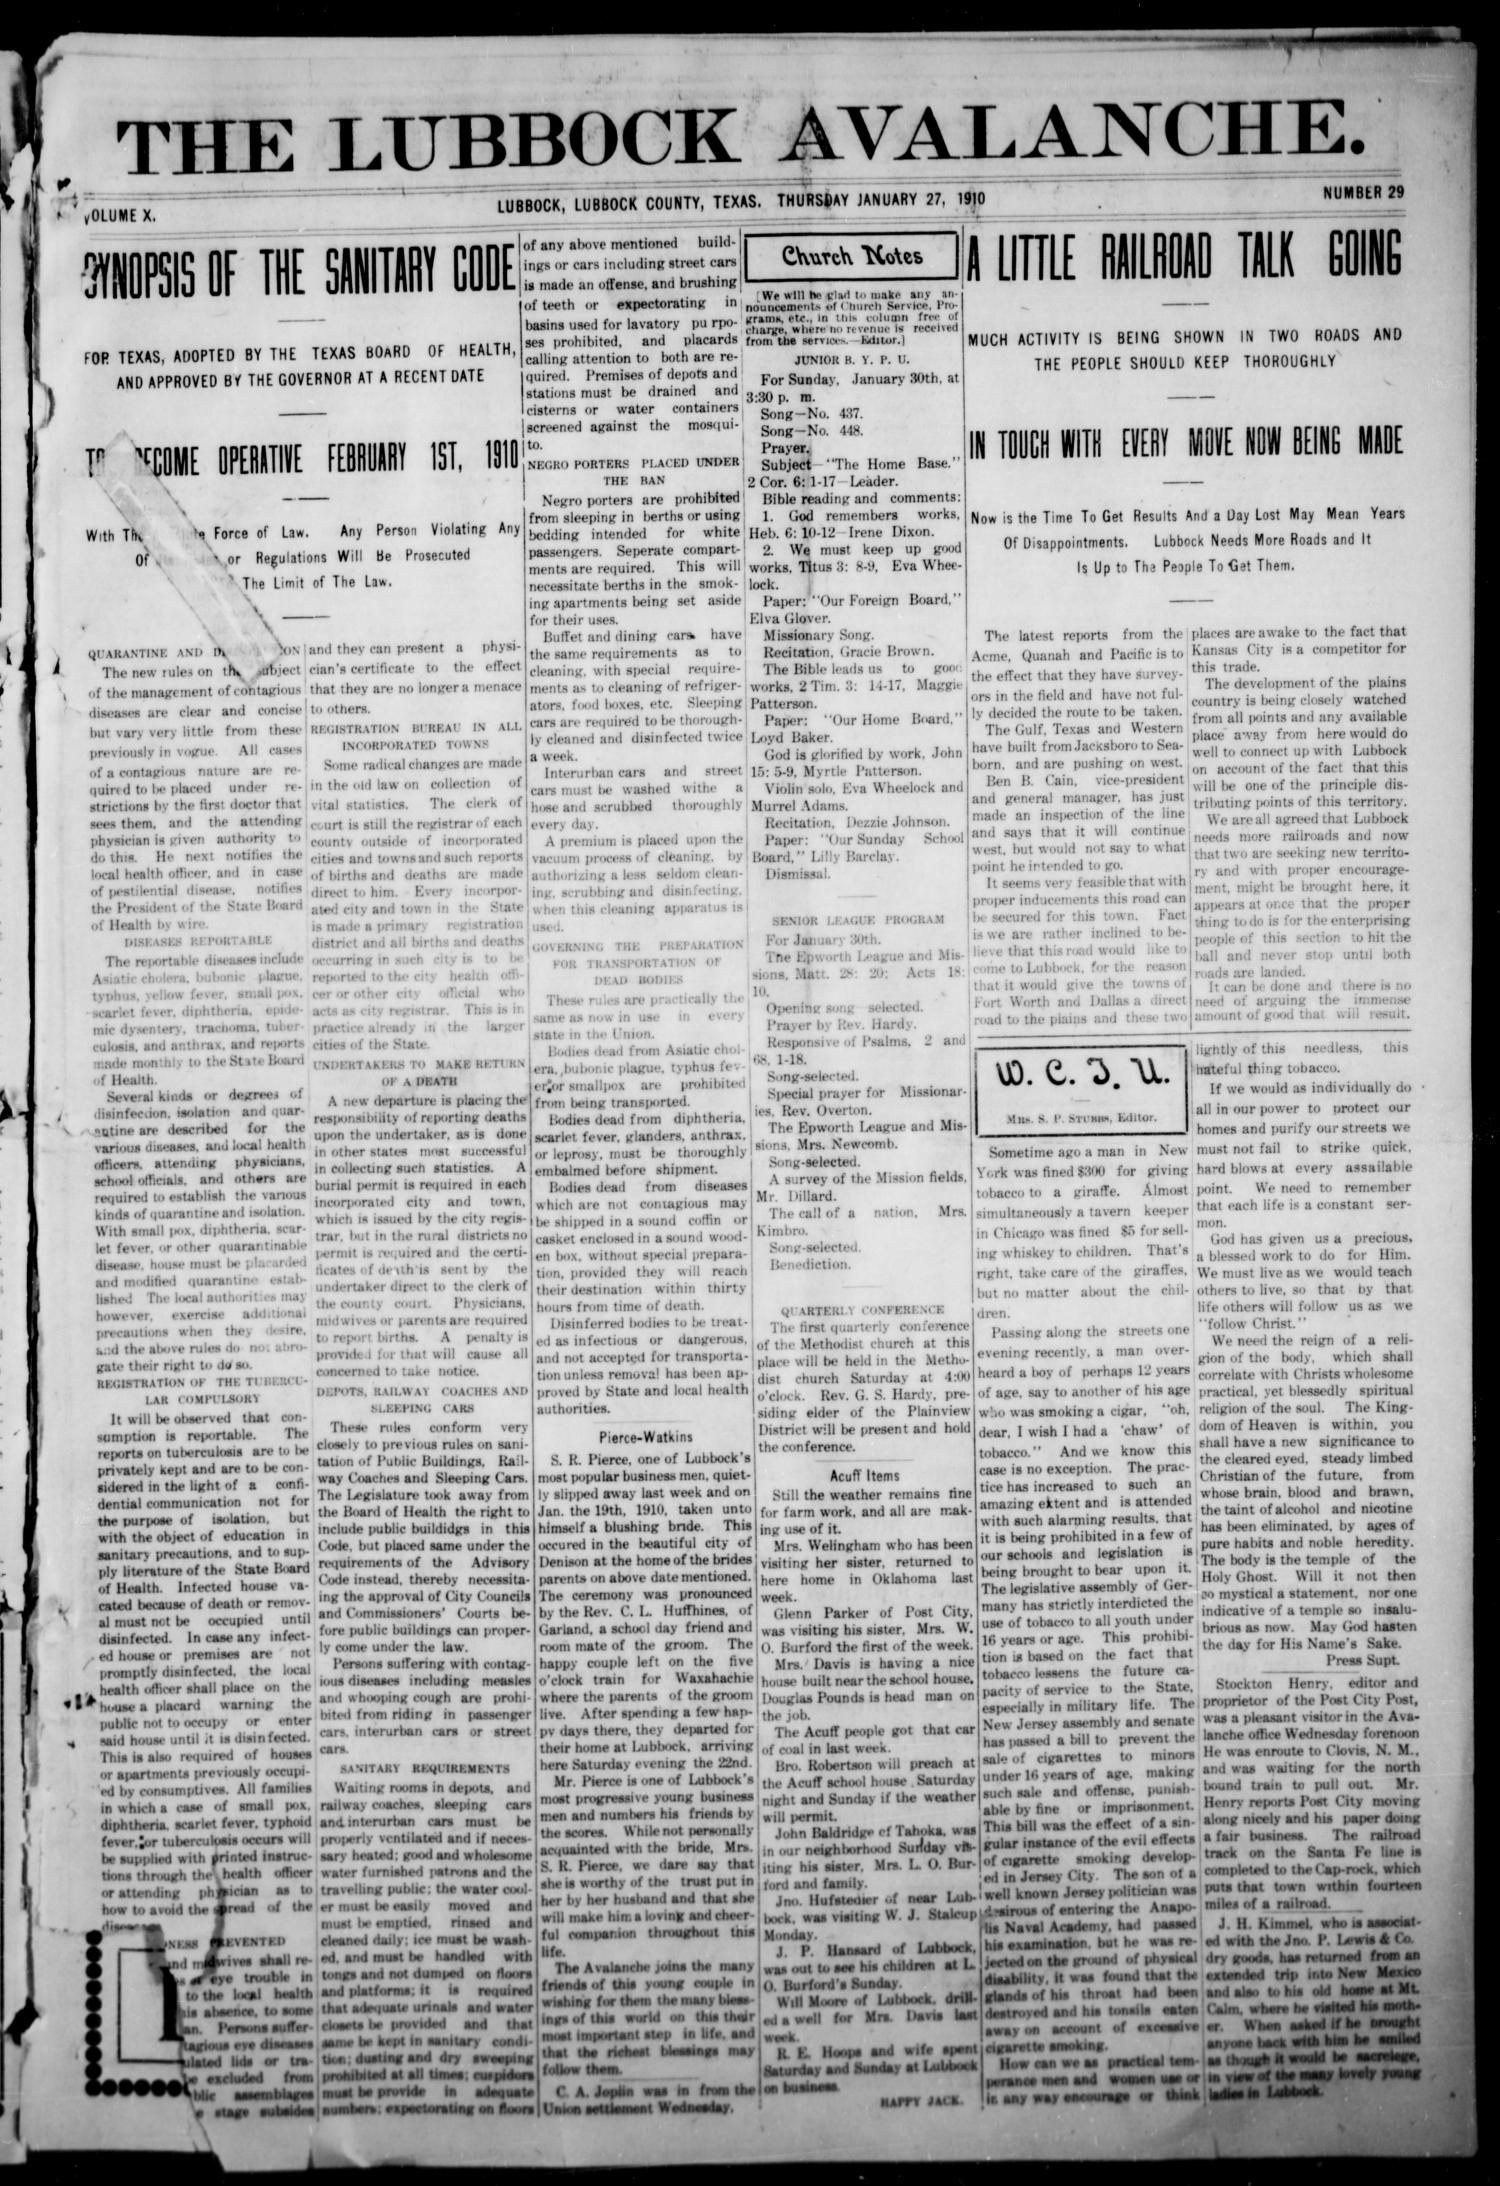 The lubbock avalanche lubbock texas vol 10 no 29 ed 1 the lubbock avalanche lubbock texas vol 10 no 29 ed 1 thursday january 27 1910 page 1 of 16 the portal to texas history aiddatafo Gallery